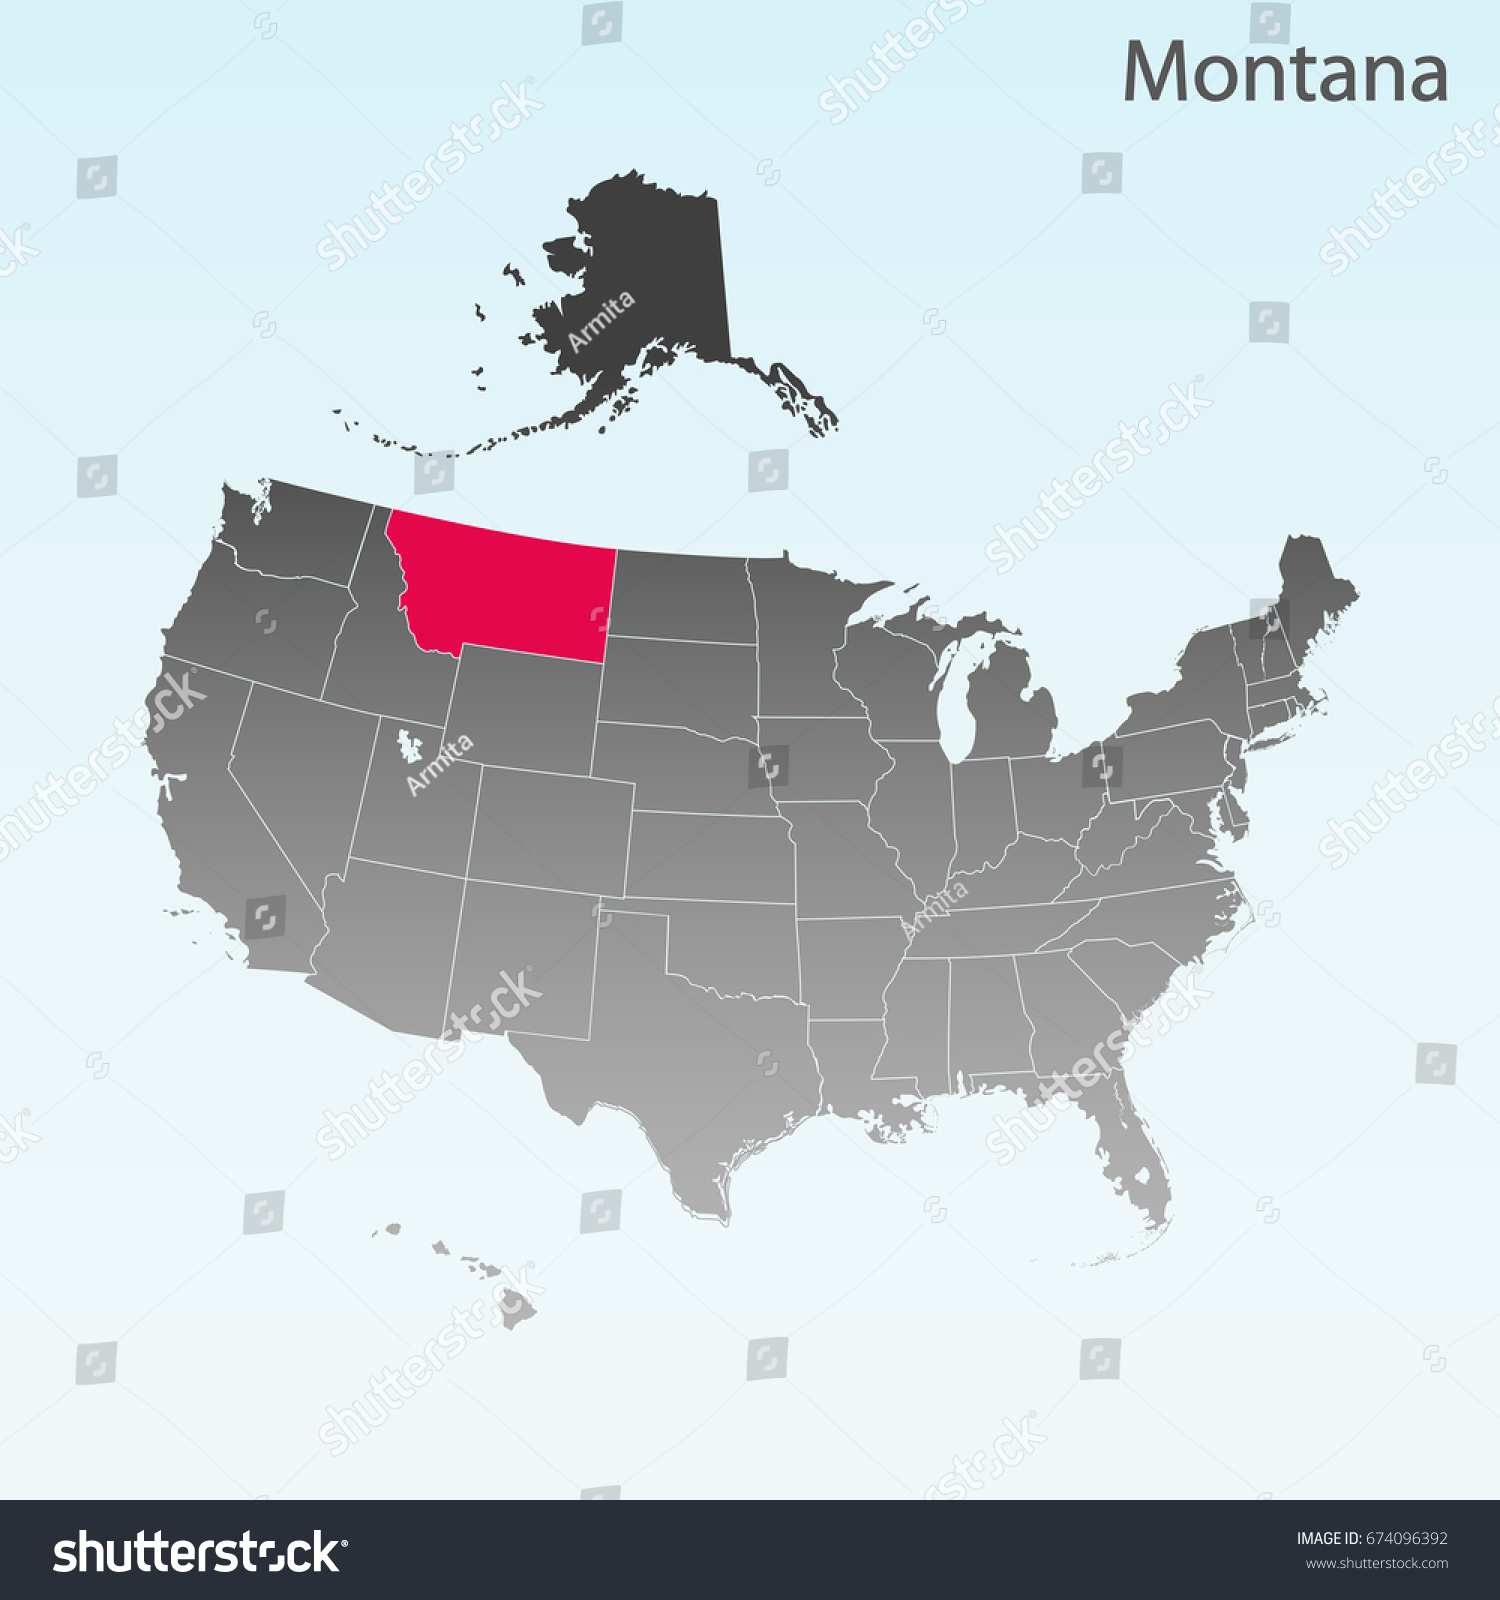 Usa State Montana Map Stock Vector Shutterstock - Montana on map of usa